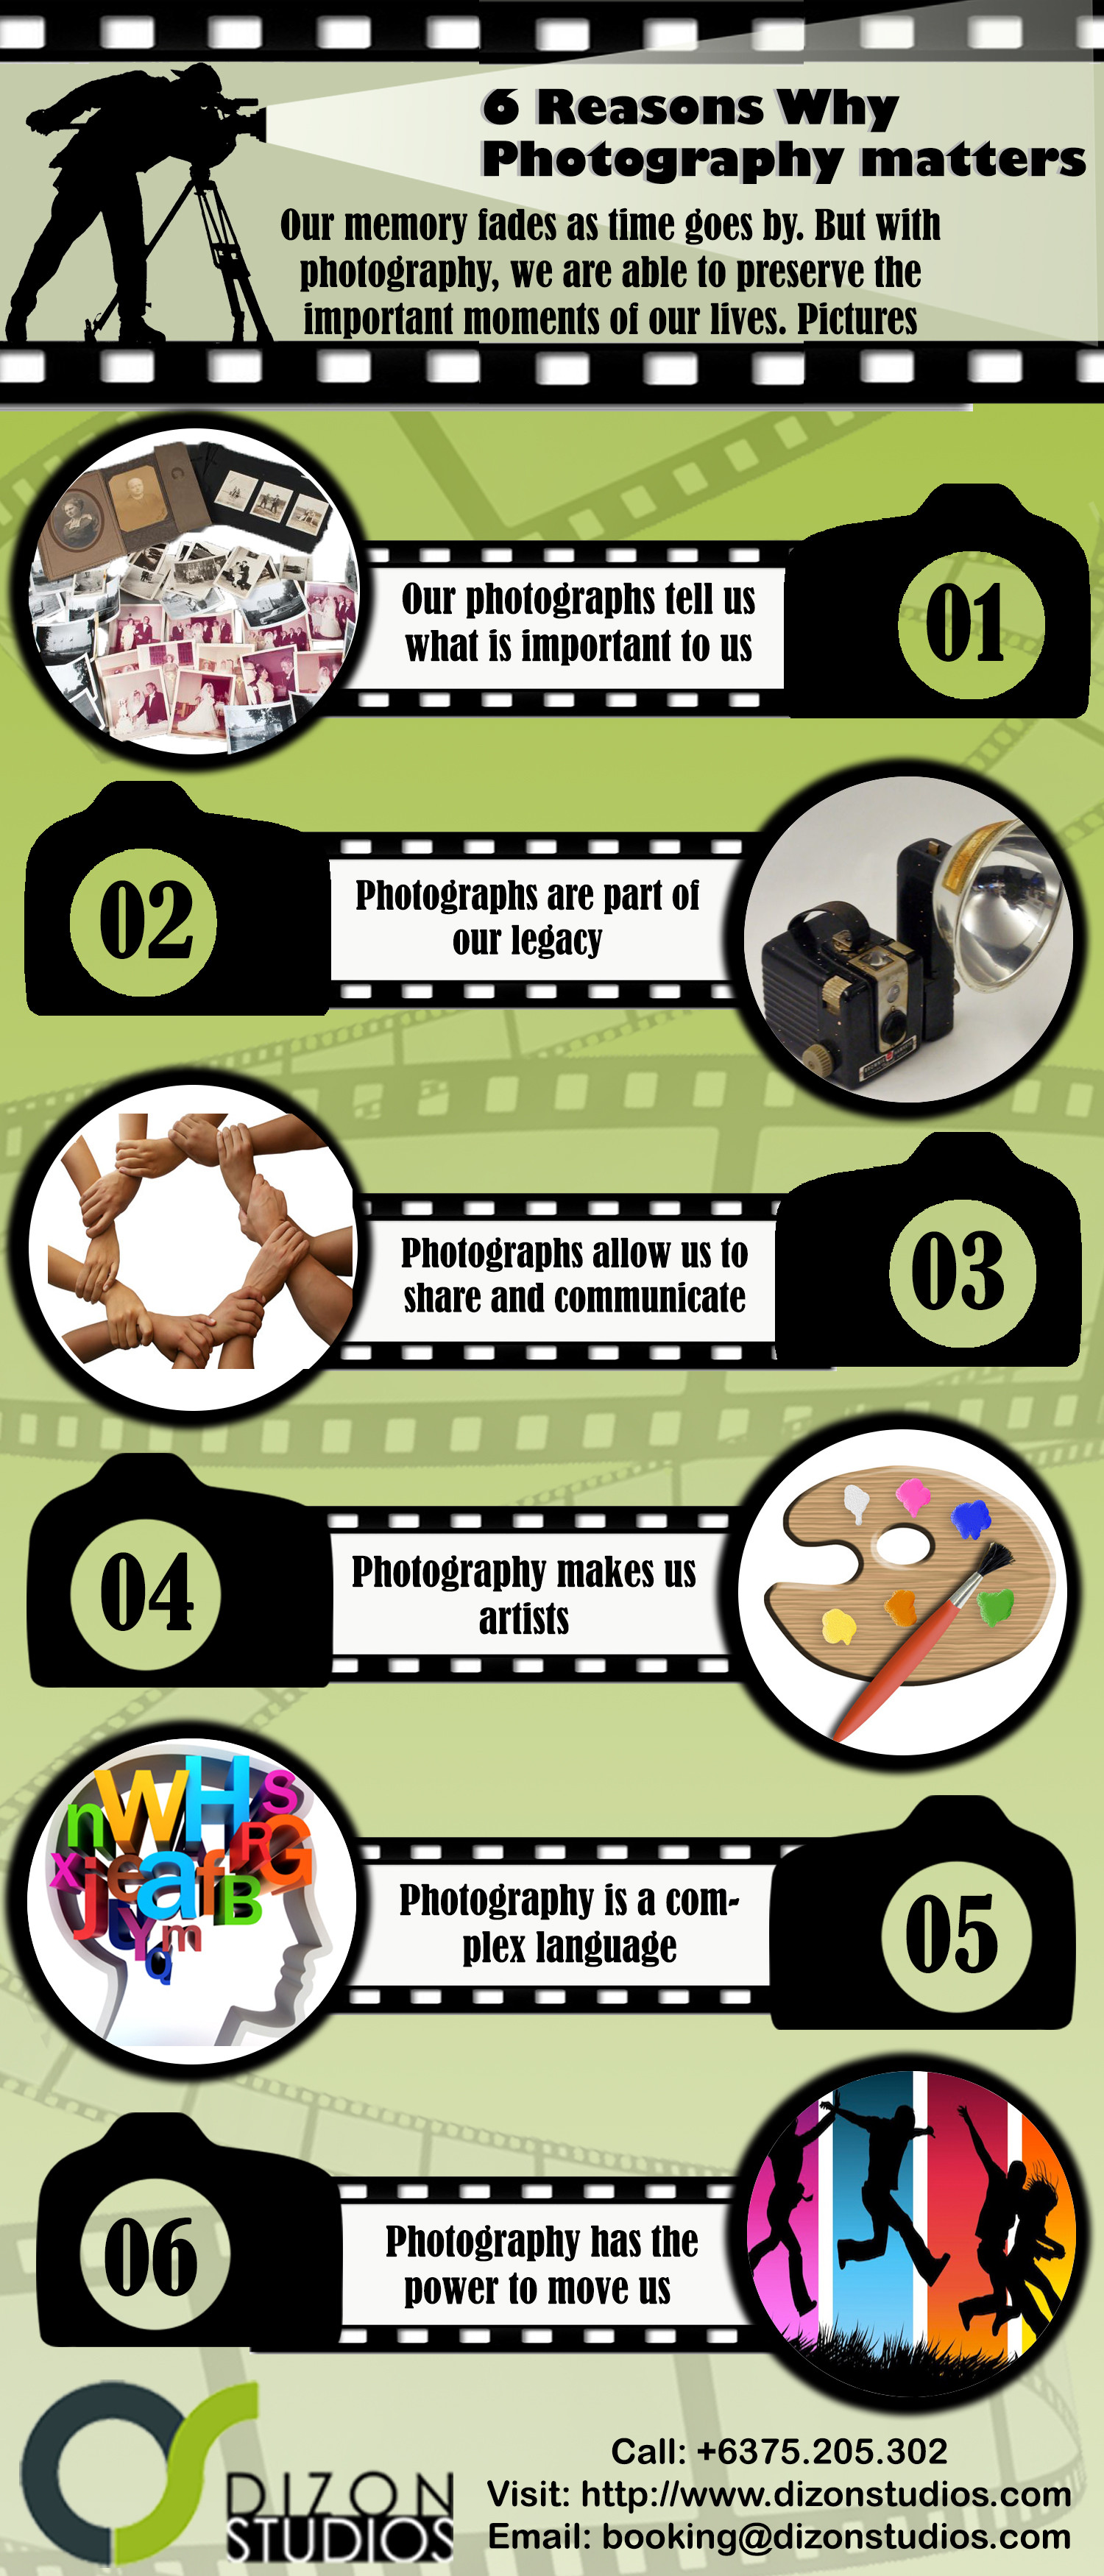 6 Reasons Why Photography Matters Infographic